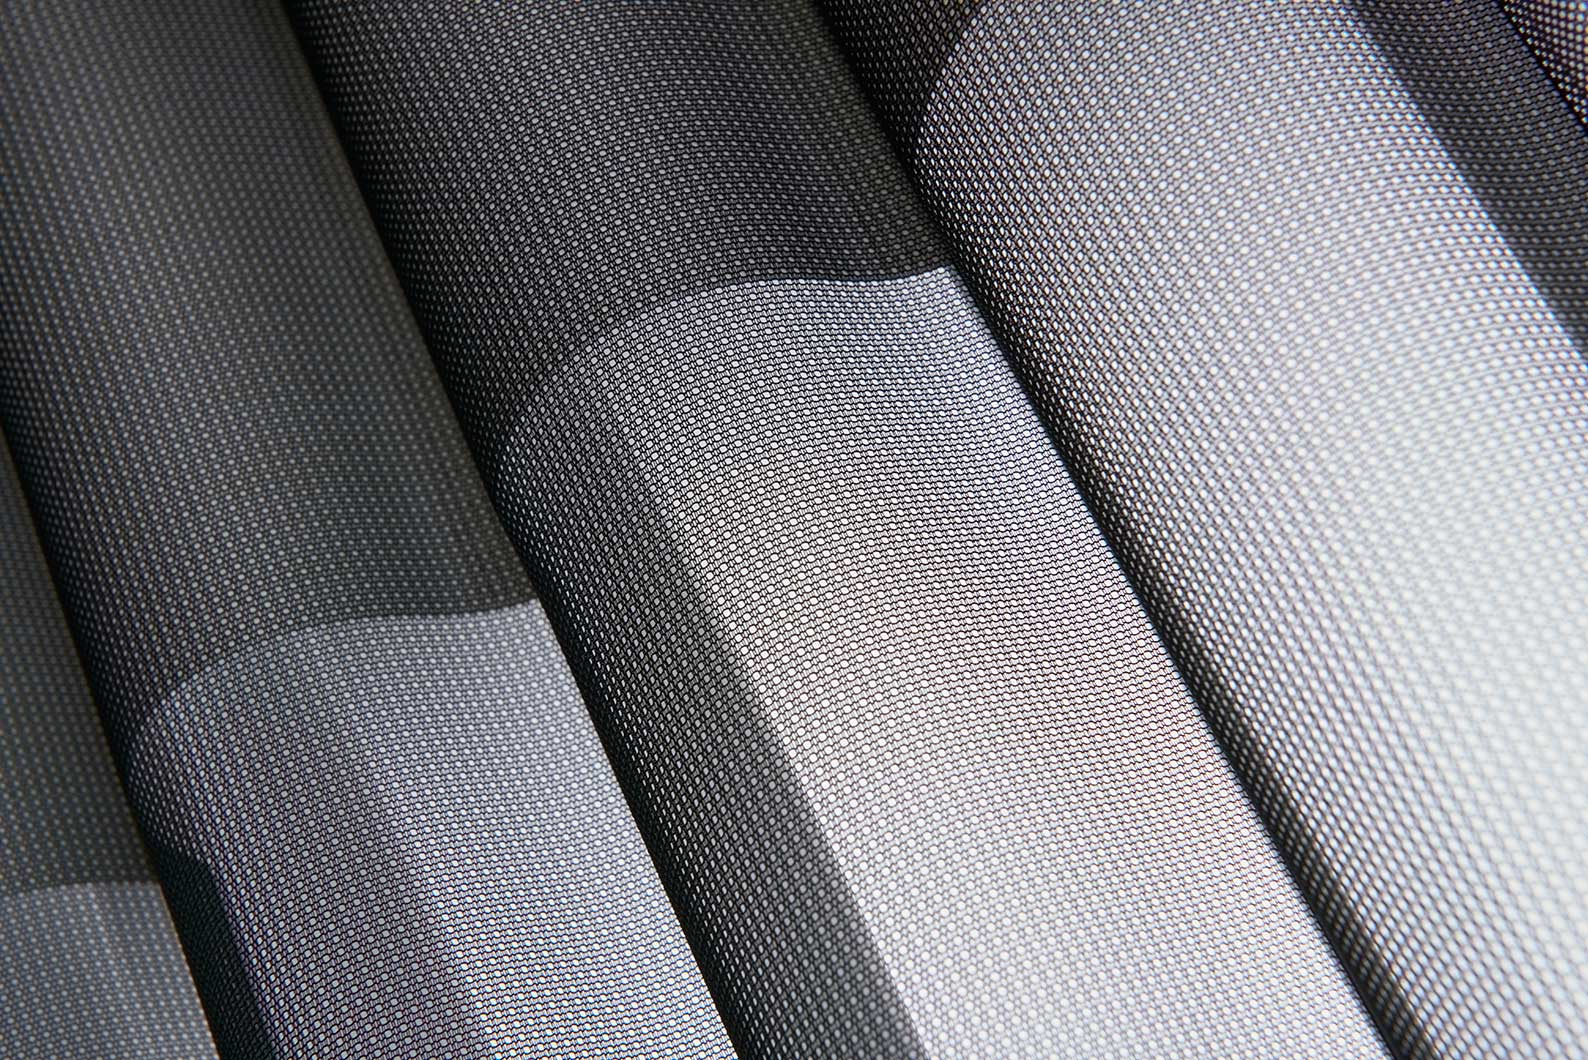 Sleek Luminette fabric texture.